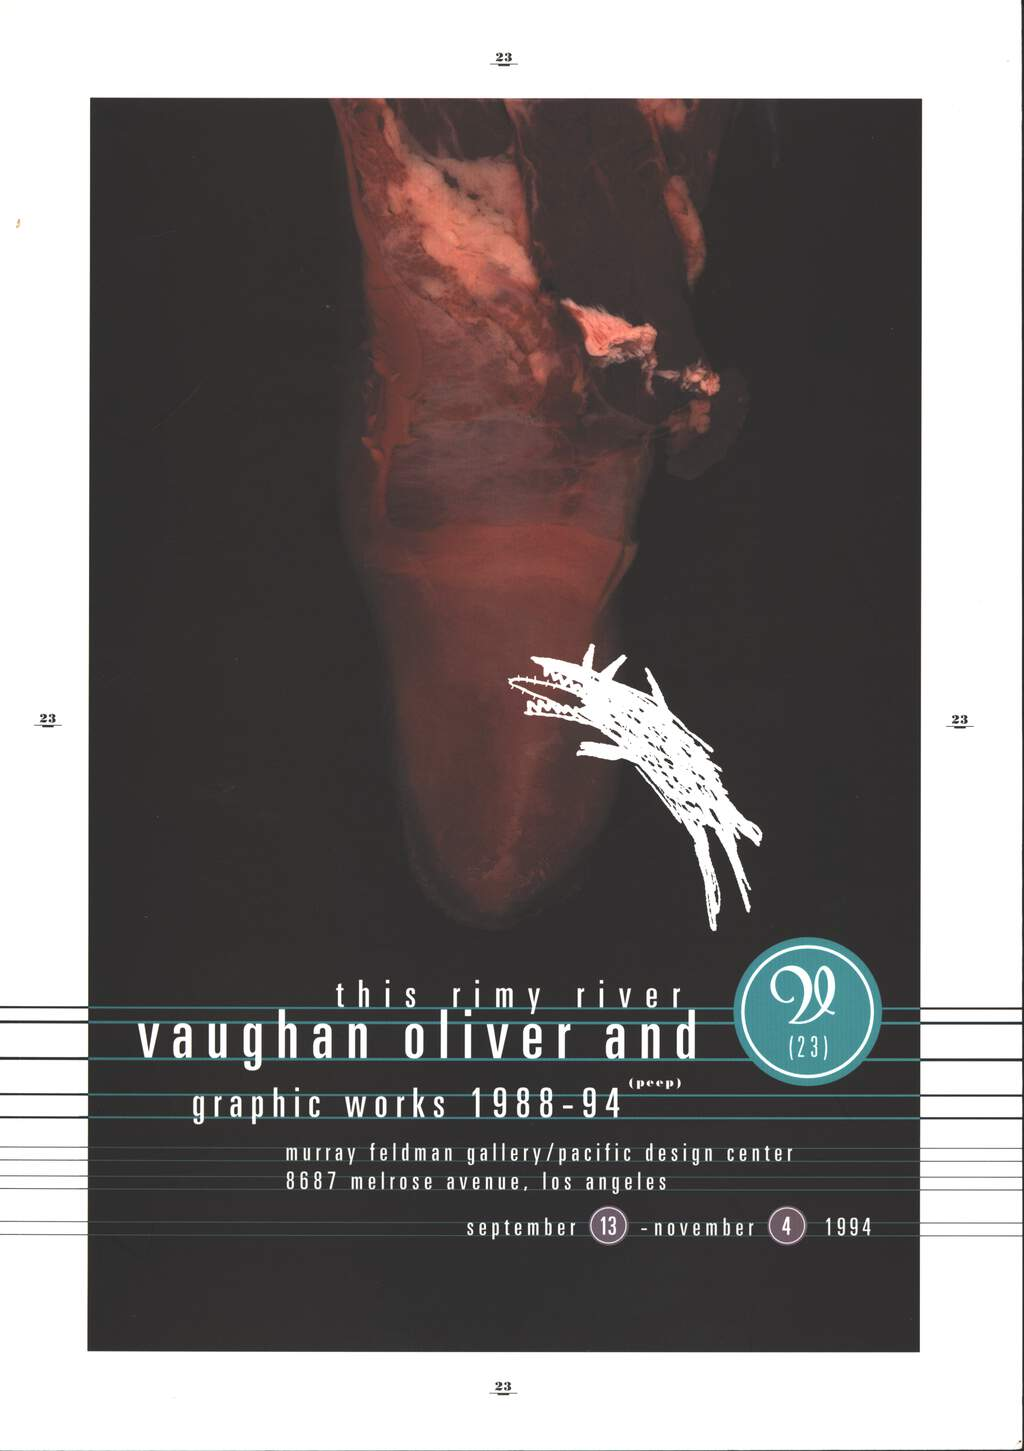 Vaughan Oliver / v23: This Rimy River, Book